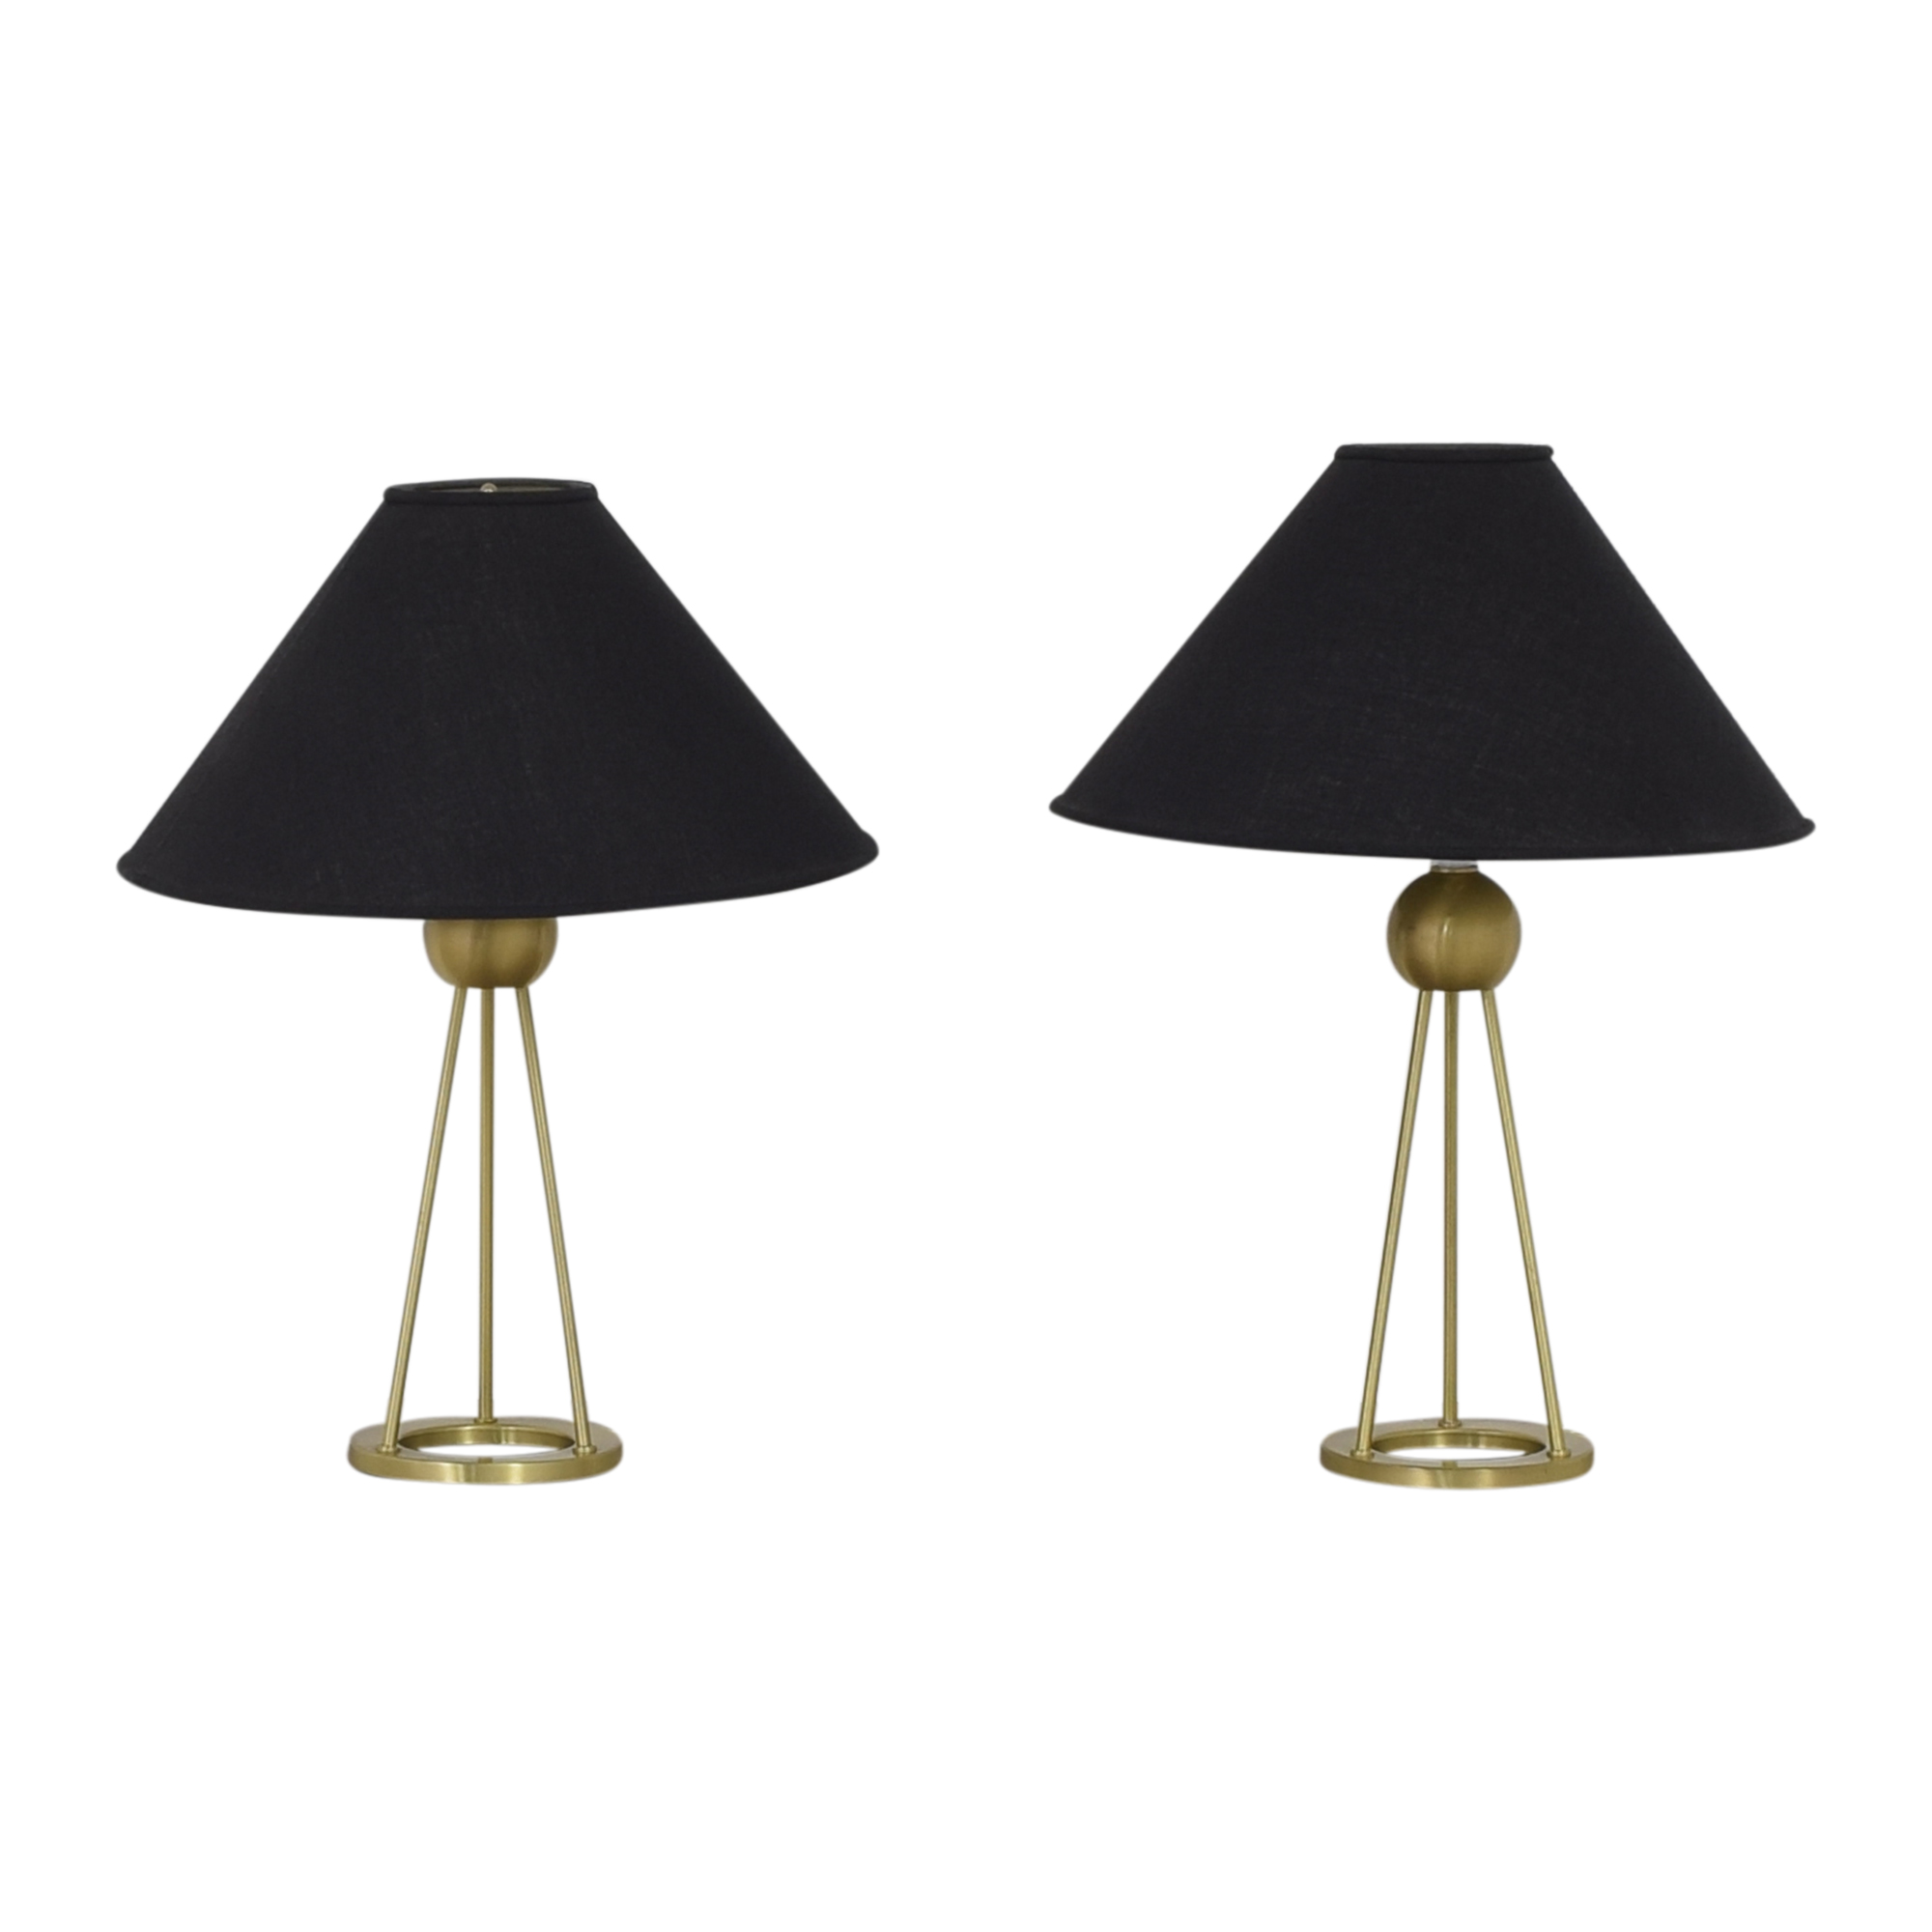 Nessen Lighting Nessen Lighting Vintage Industrial Table Lamps on sale